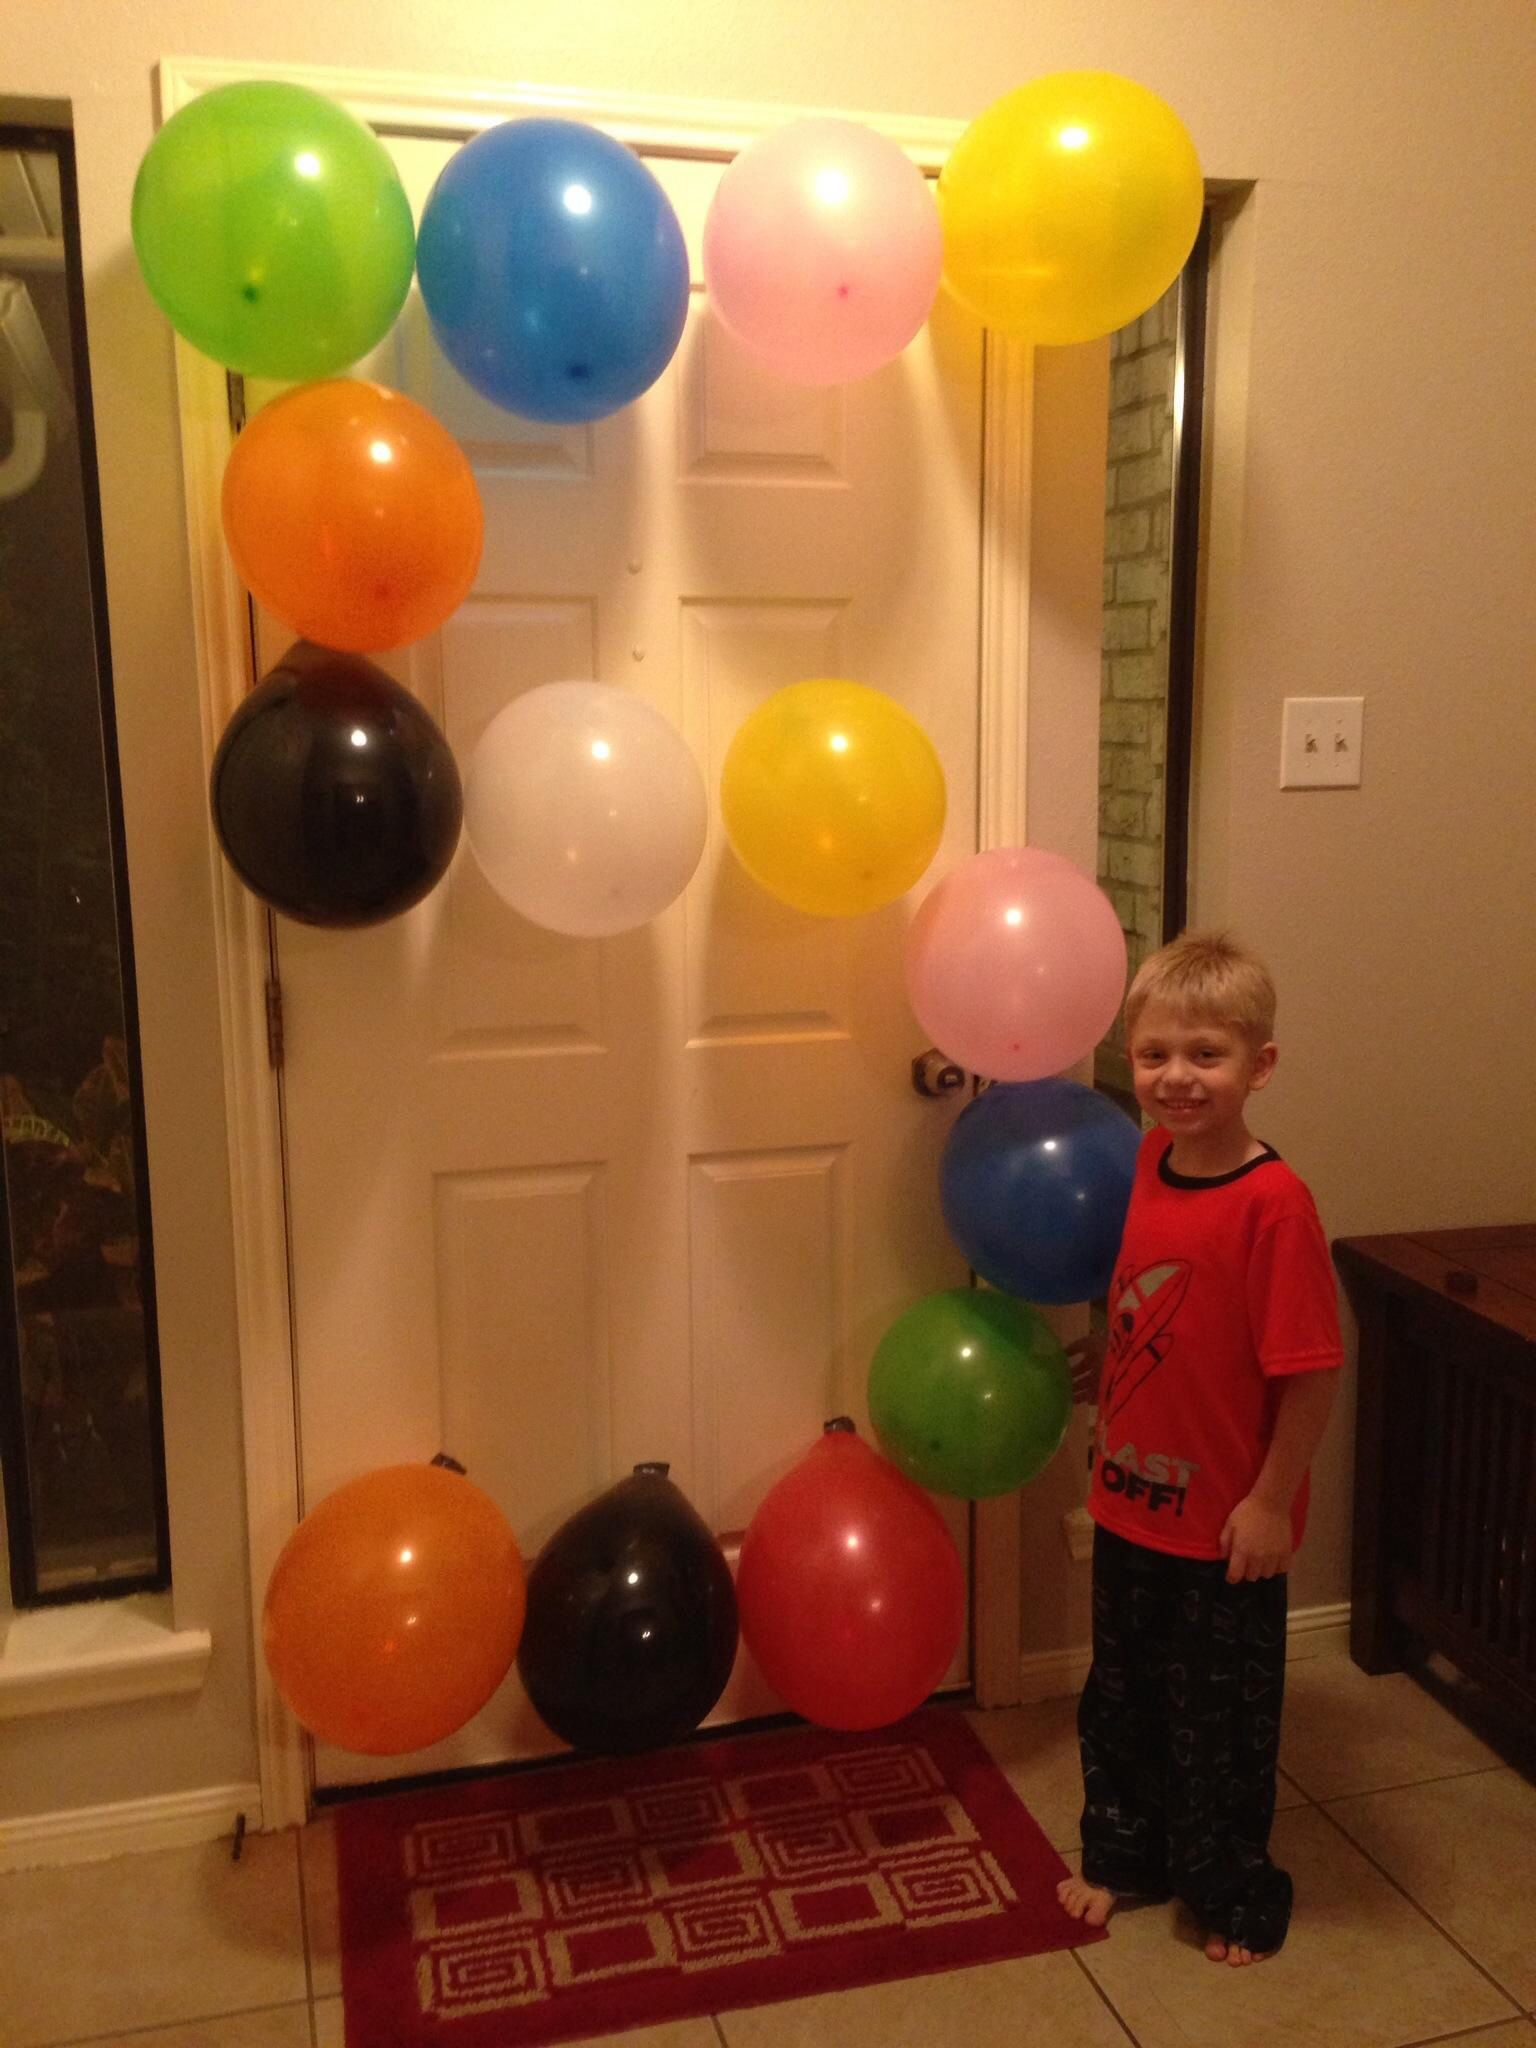 Son Turned 5 Years Old Take A Picture With Balloons Shaped Into The Number